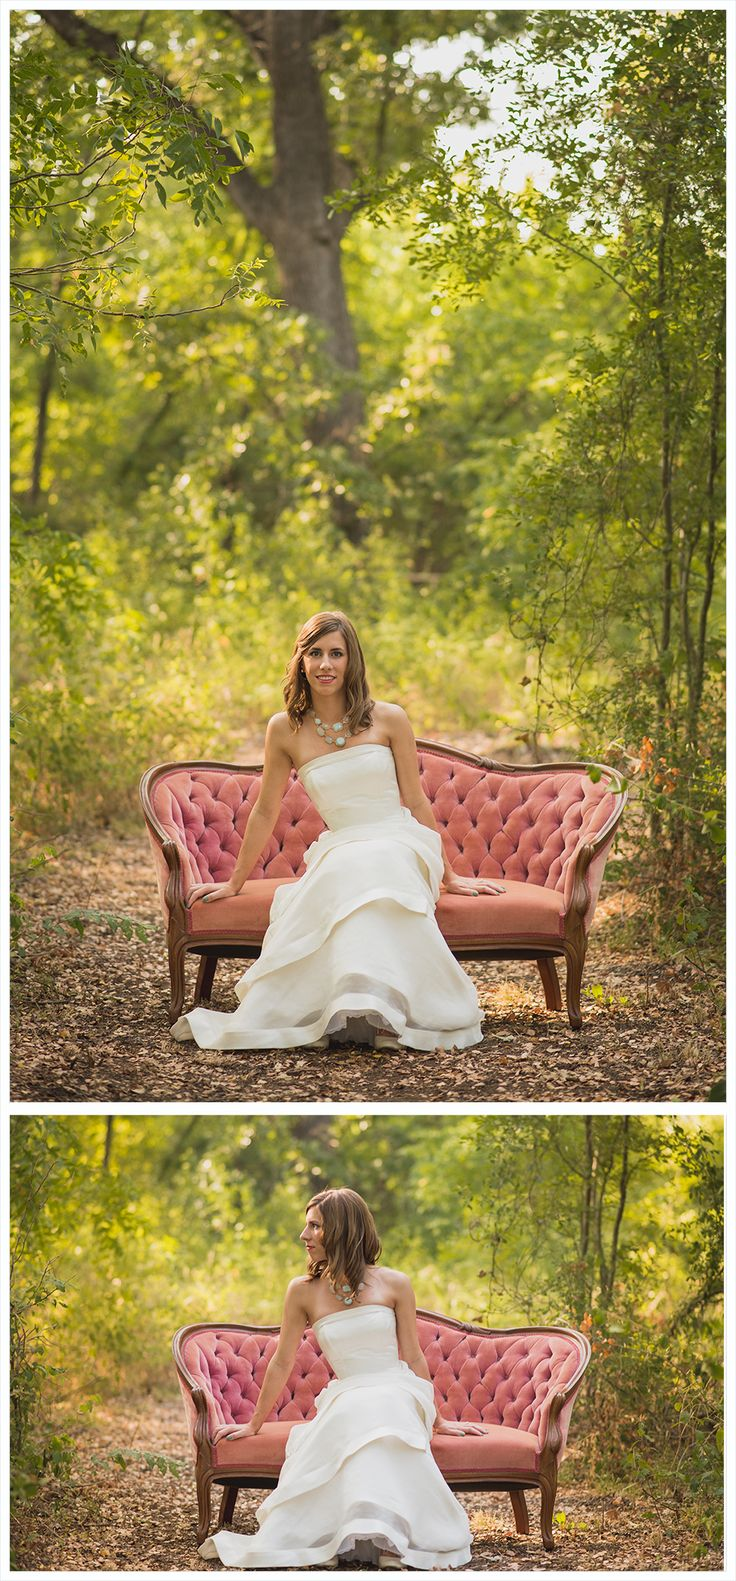 bridal photography, bridal portraits, bridal picture, bride images, furniture in a field, nature, pink settee, pink furniture, beautiful, backlight, hydrangeas, bride, white gown, stunning, vintage, antique, rent my dust, unique, old car, black car